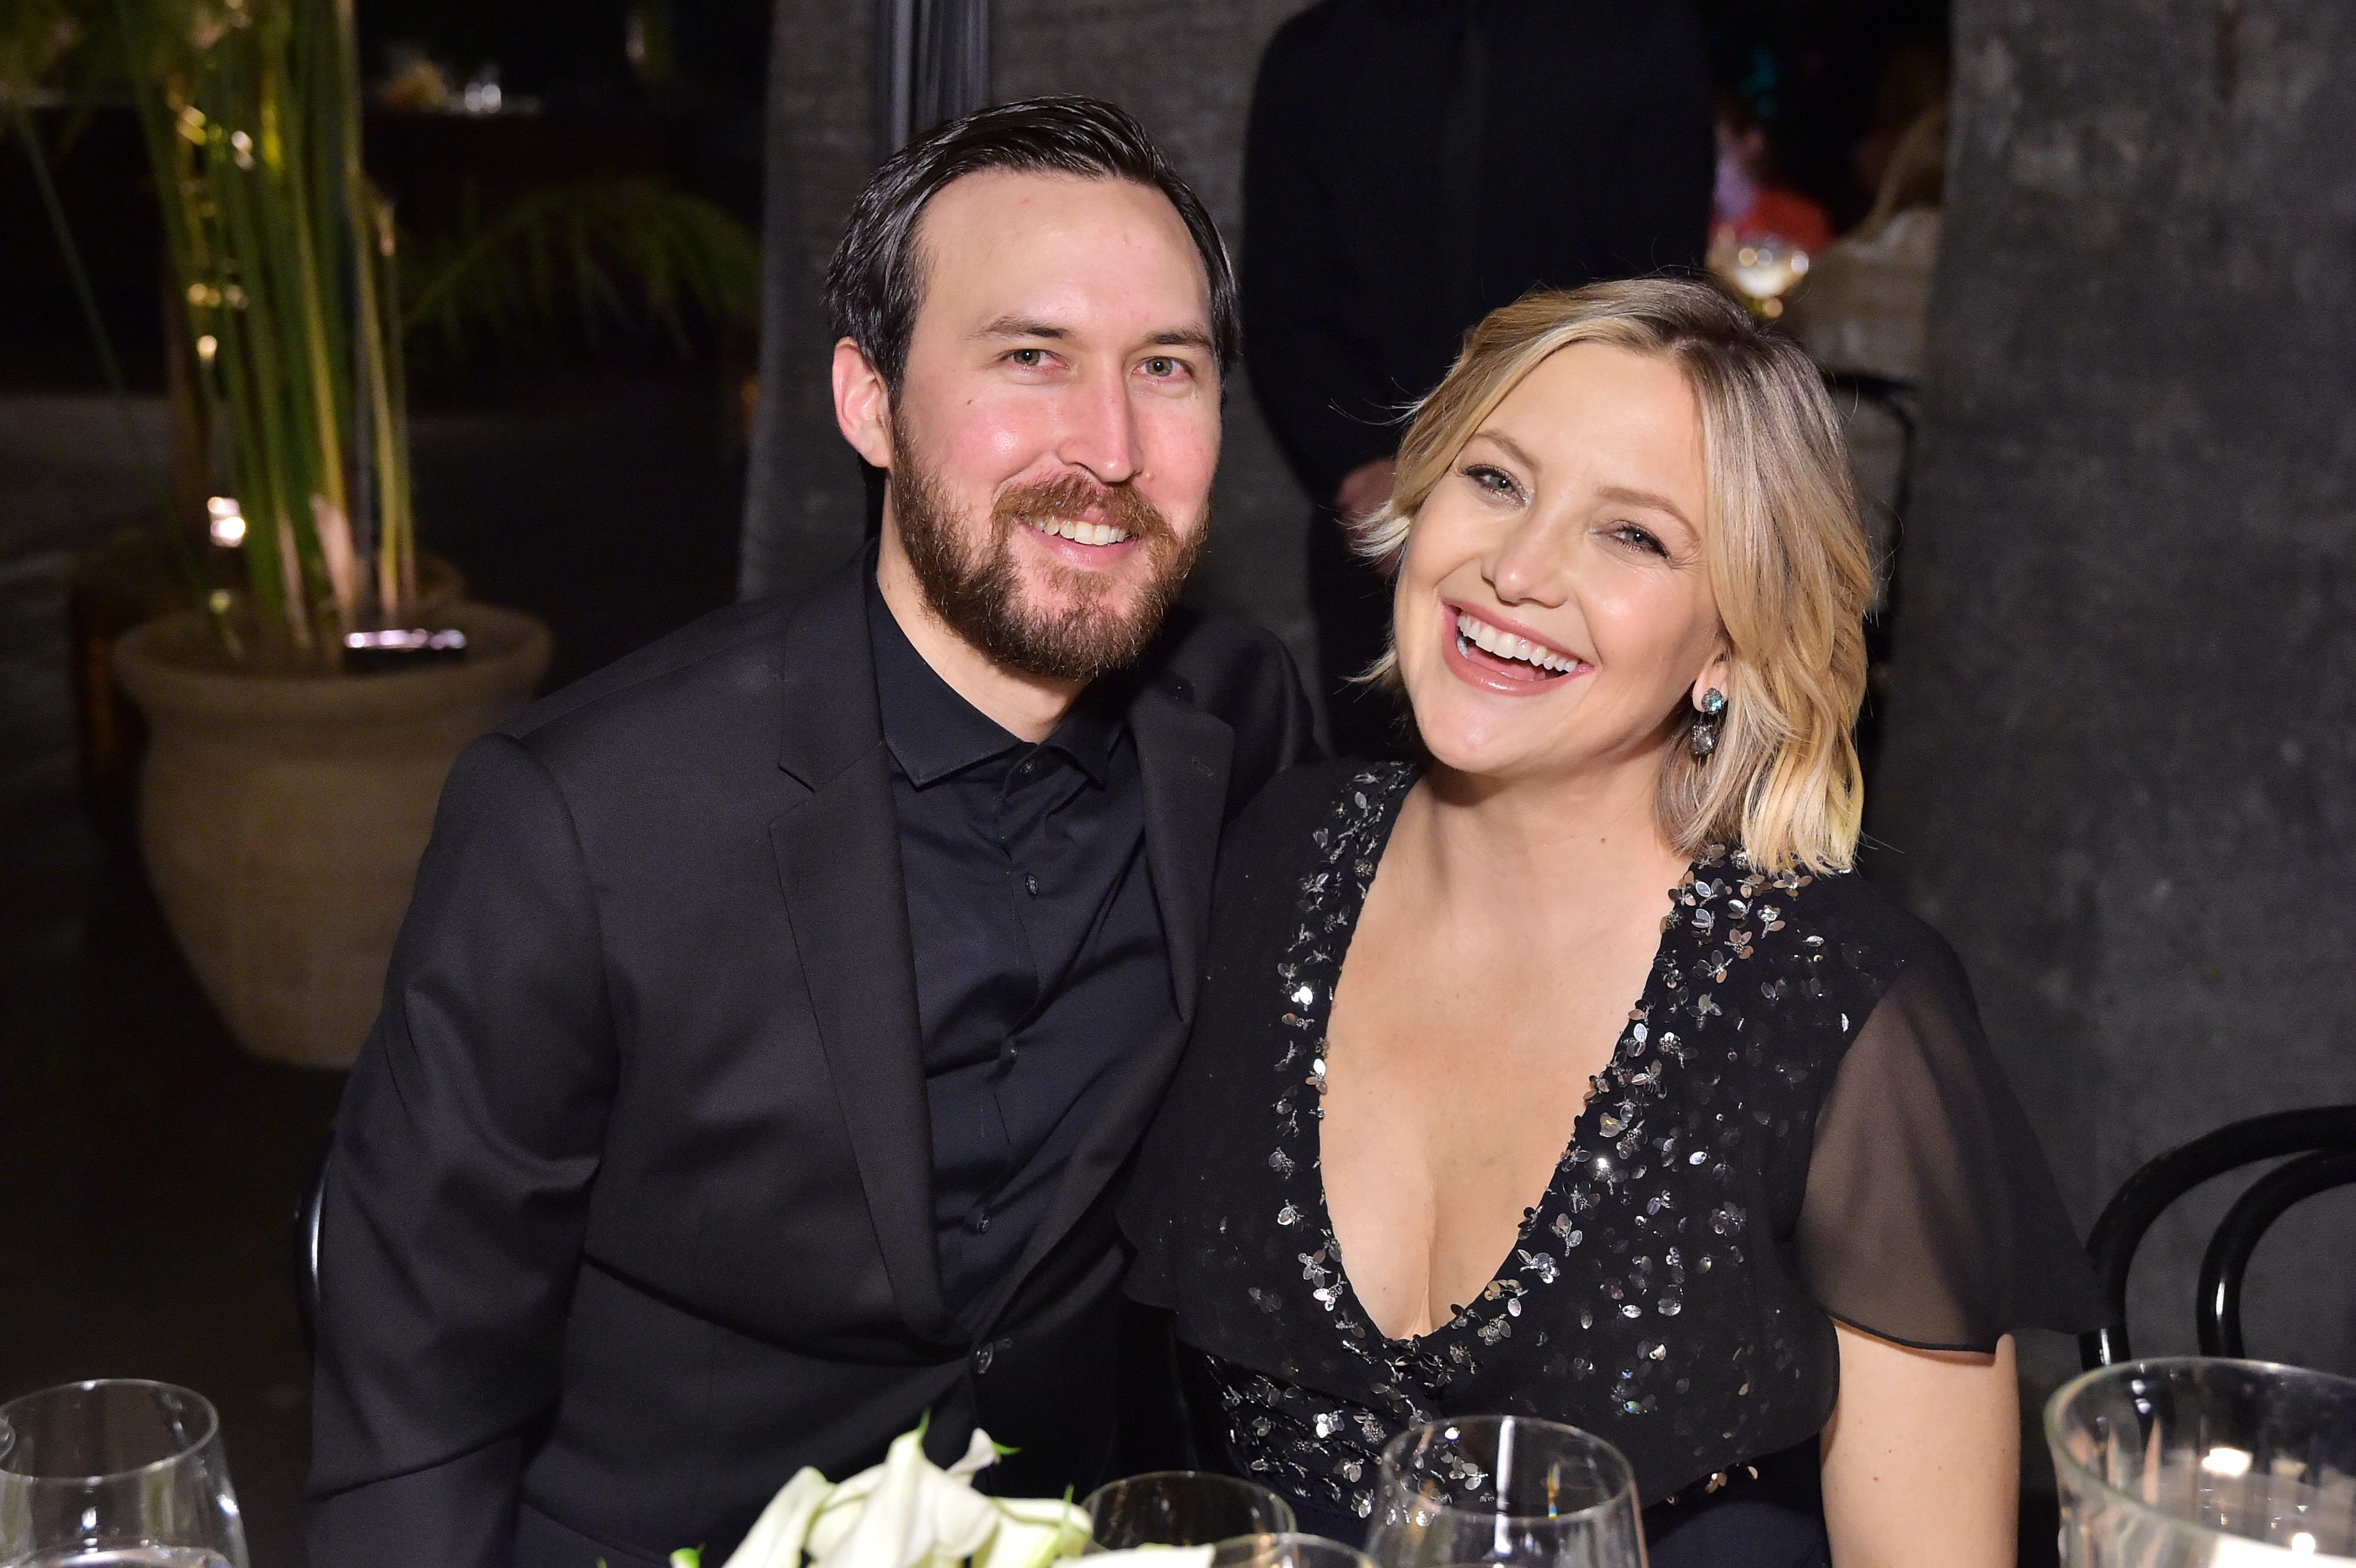 Danny Fujikawa and Kate Hudson at a Michael Kors Dinner to celebrate Hudson and The World Food Programme on November 7, 2018, in Beverly Hills, California | Photo: Stefanie Keenan/Getty Images